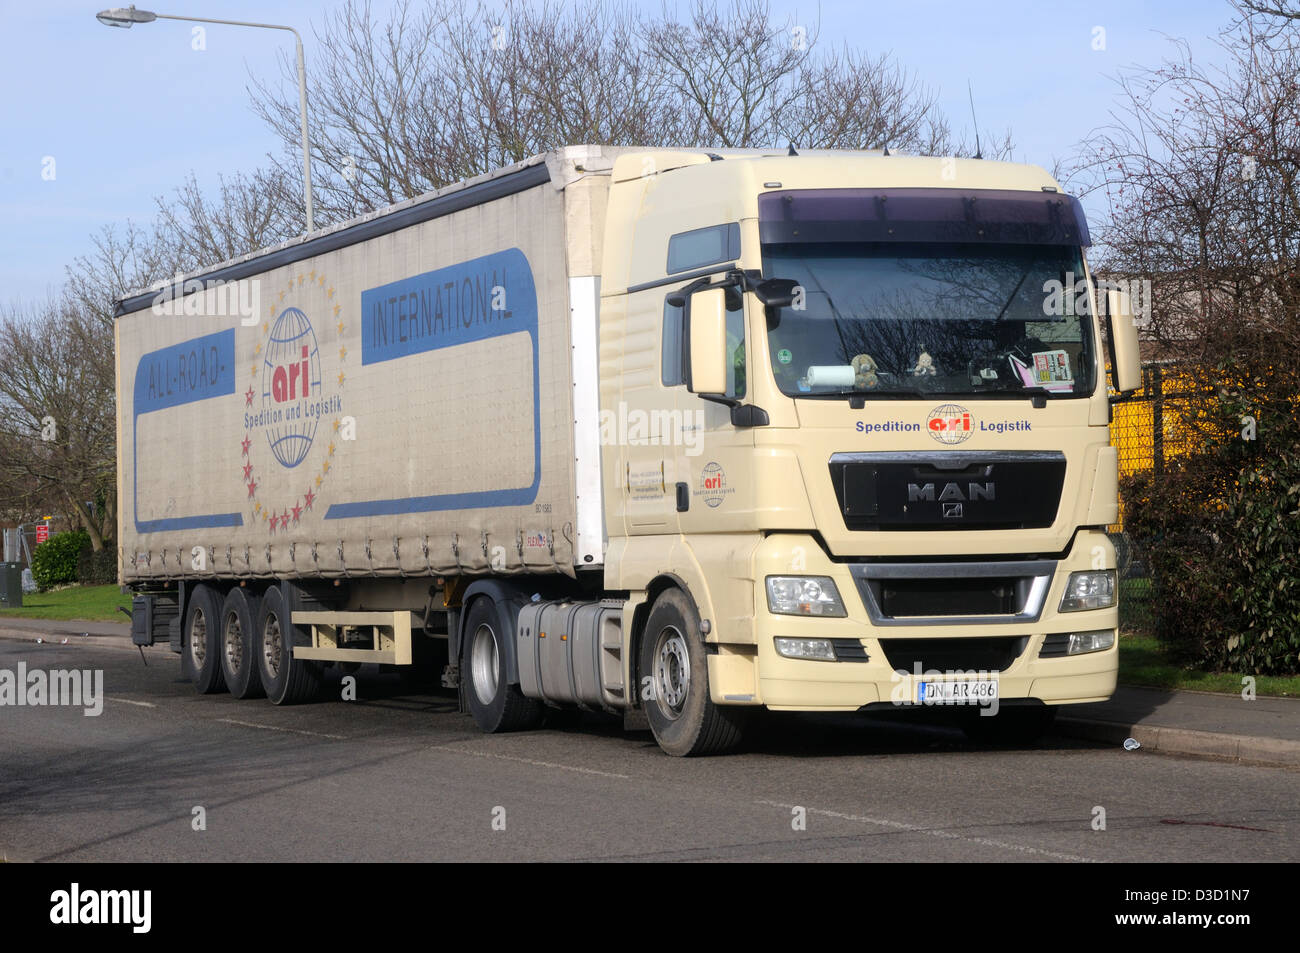 semi trailer deutsch homemade water filter diagram a man tgx 18 440 tractor unit and in the livery of